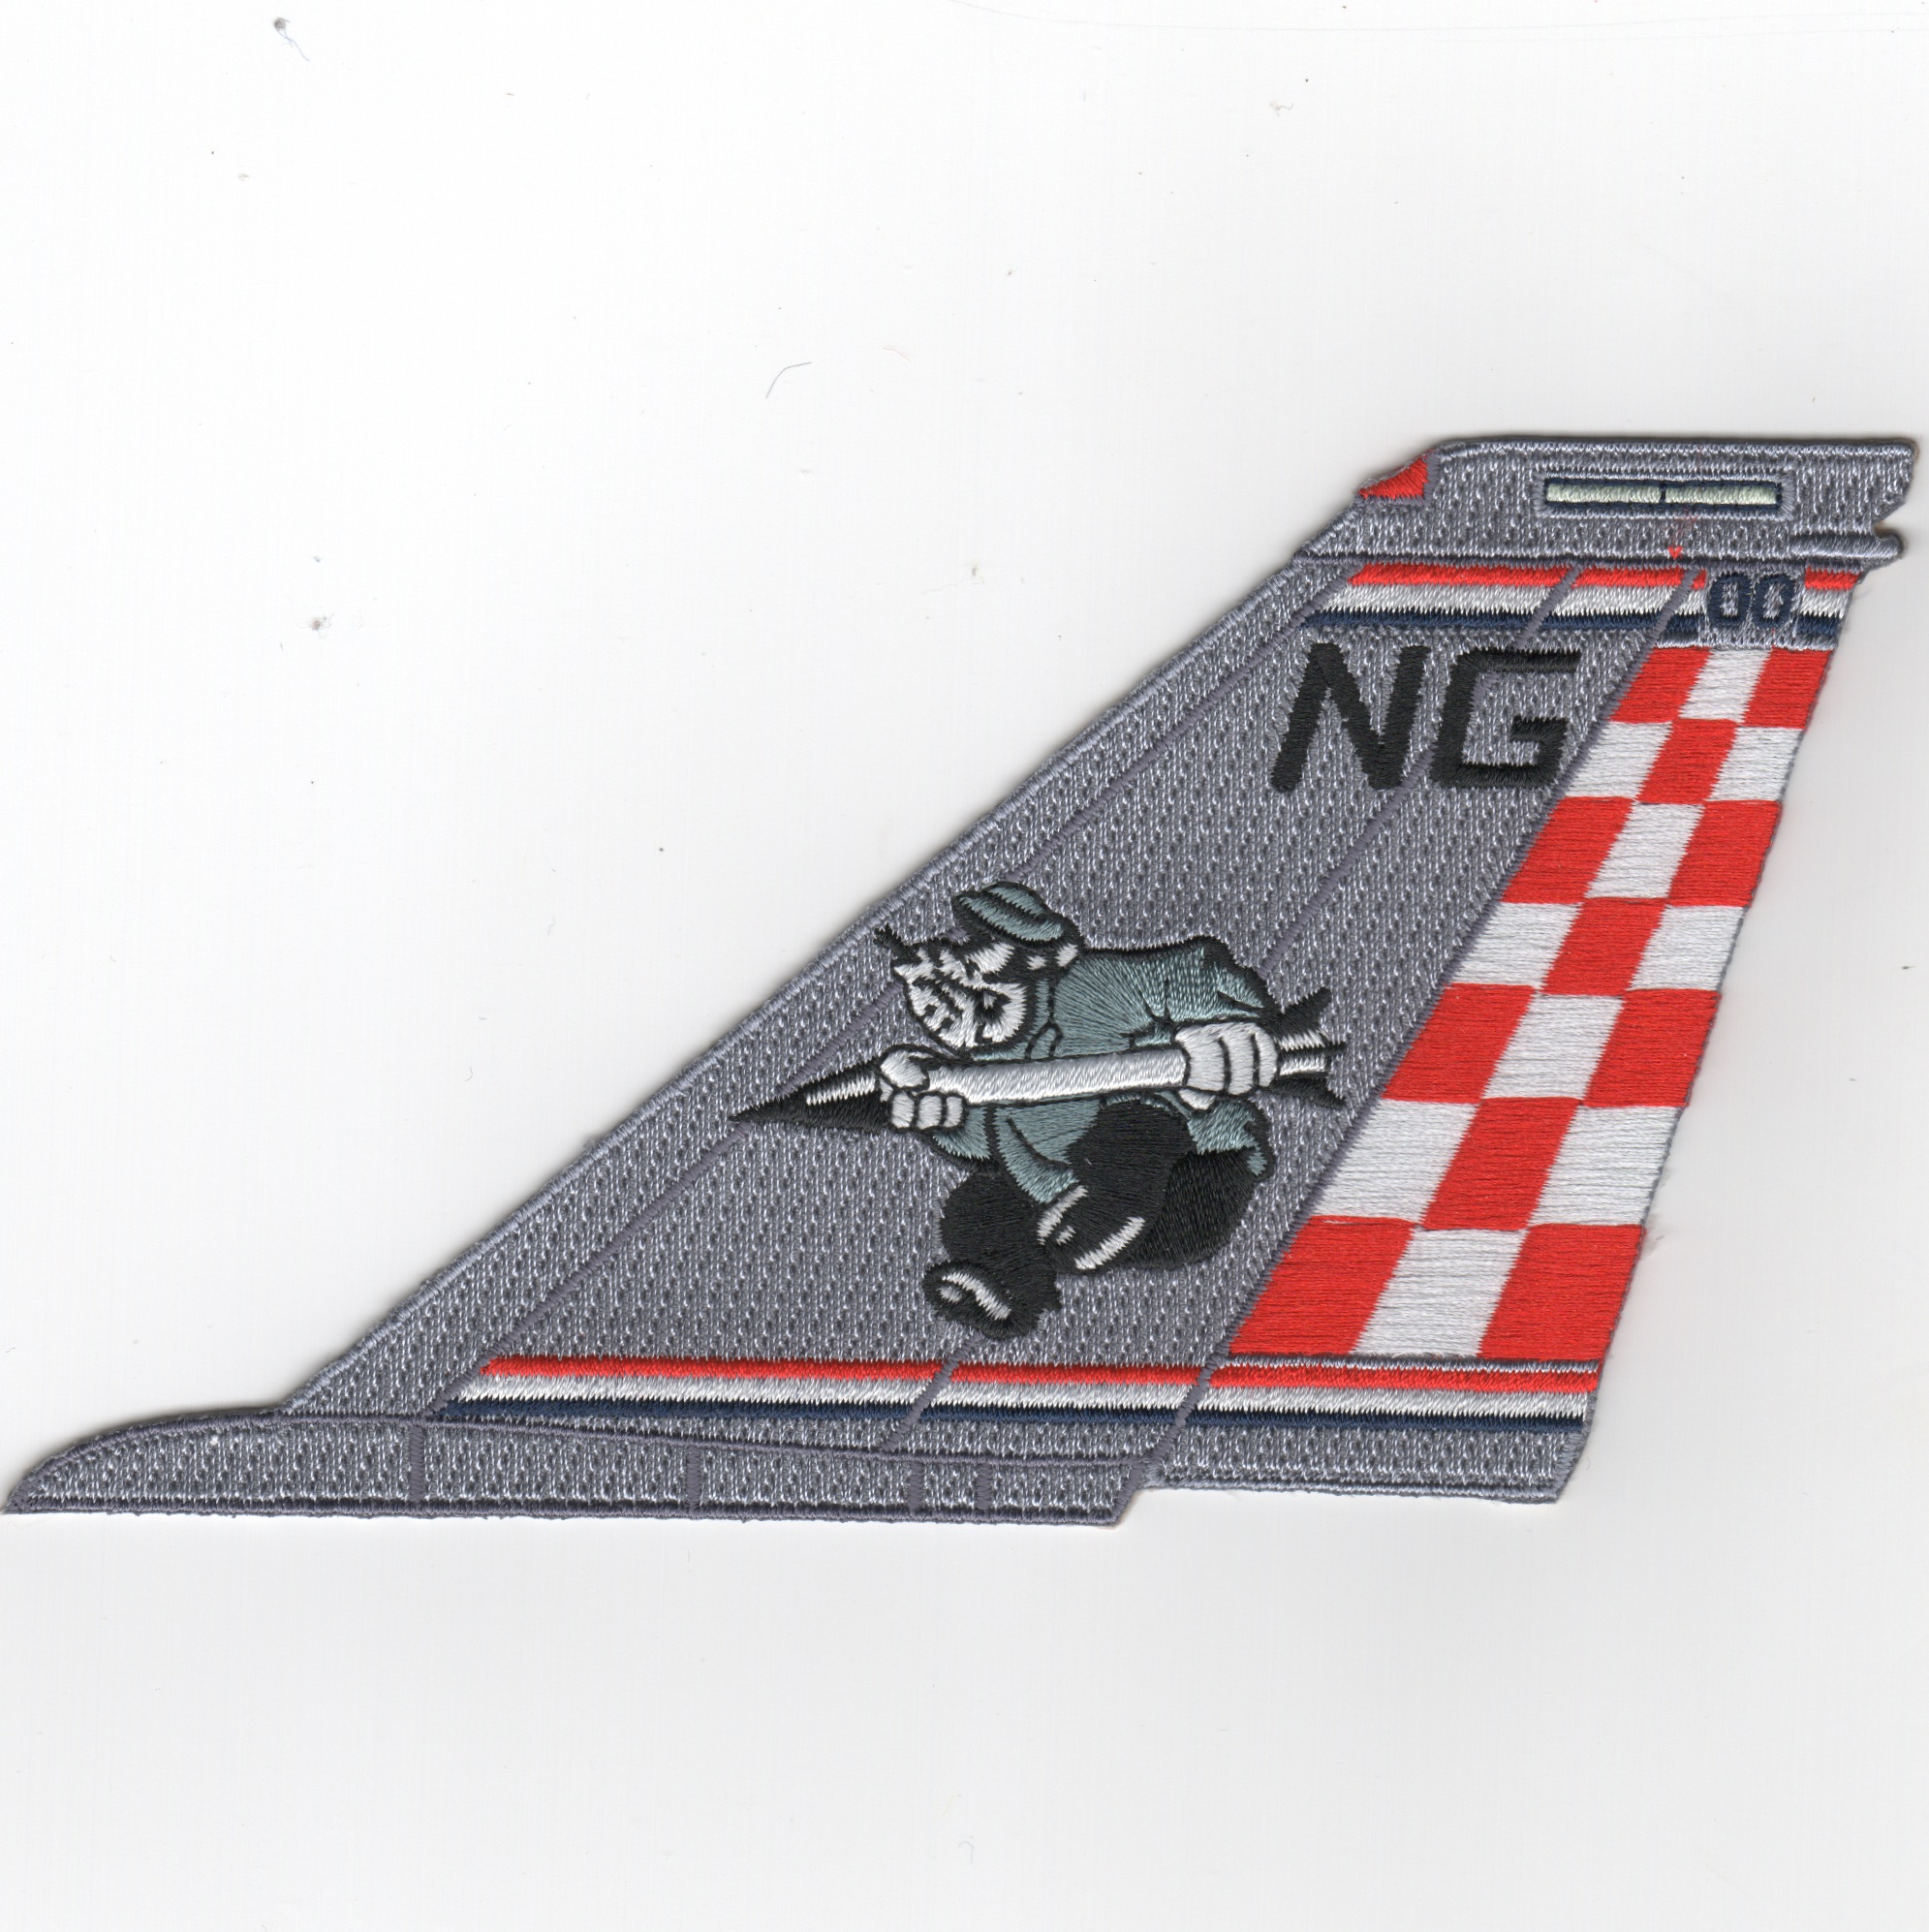 VF-211 F-14 Tailfin (No Text/BRUTUS)